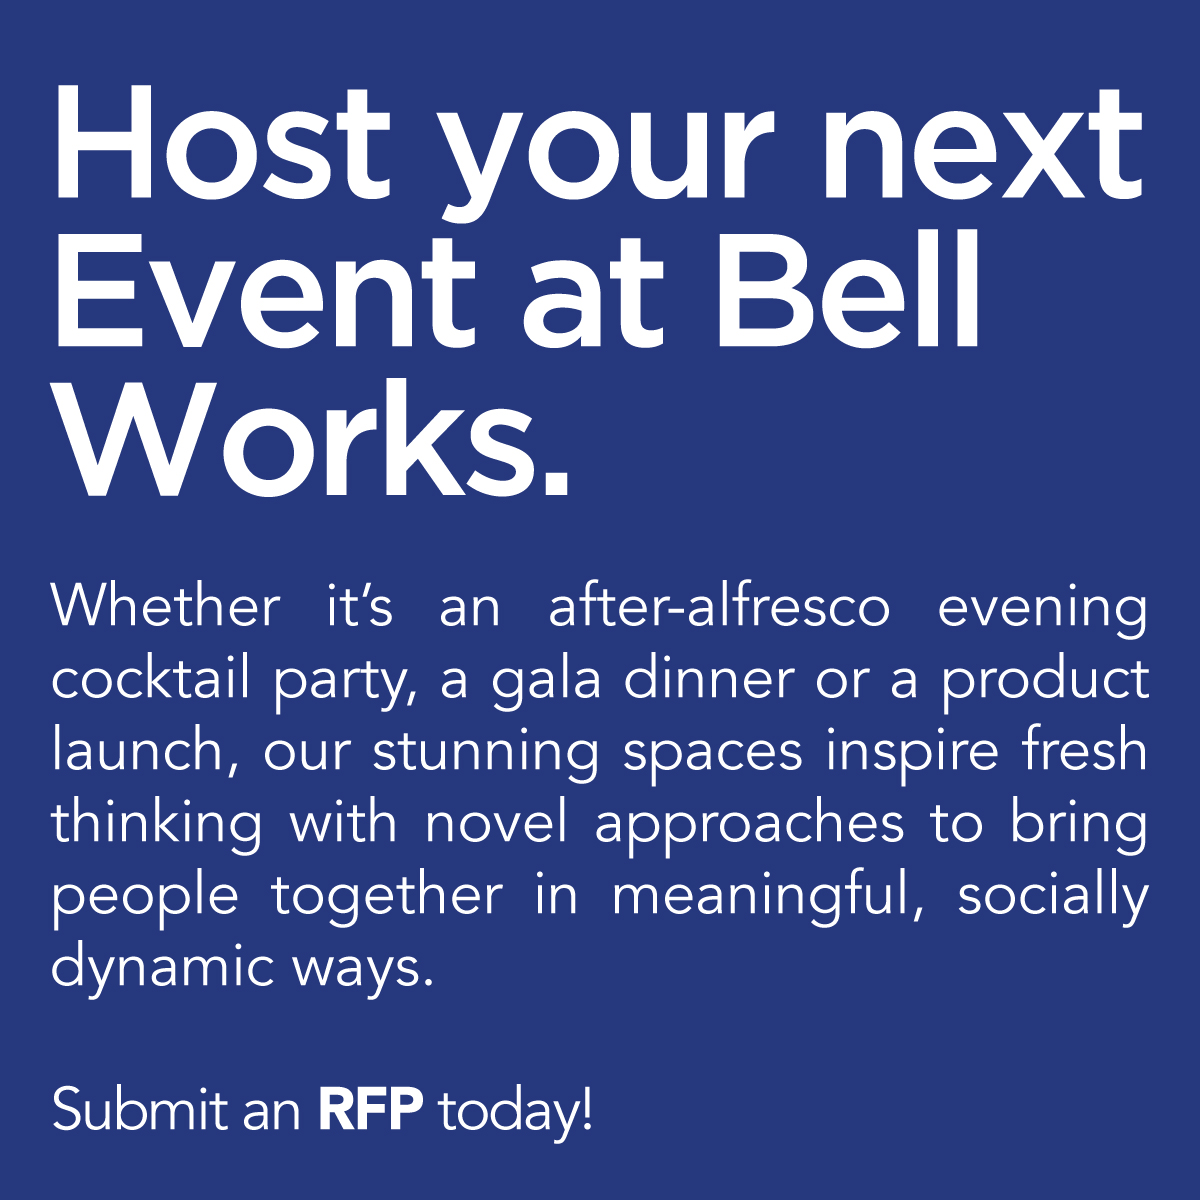 Host your next event at Bell Works.